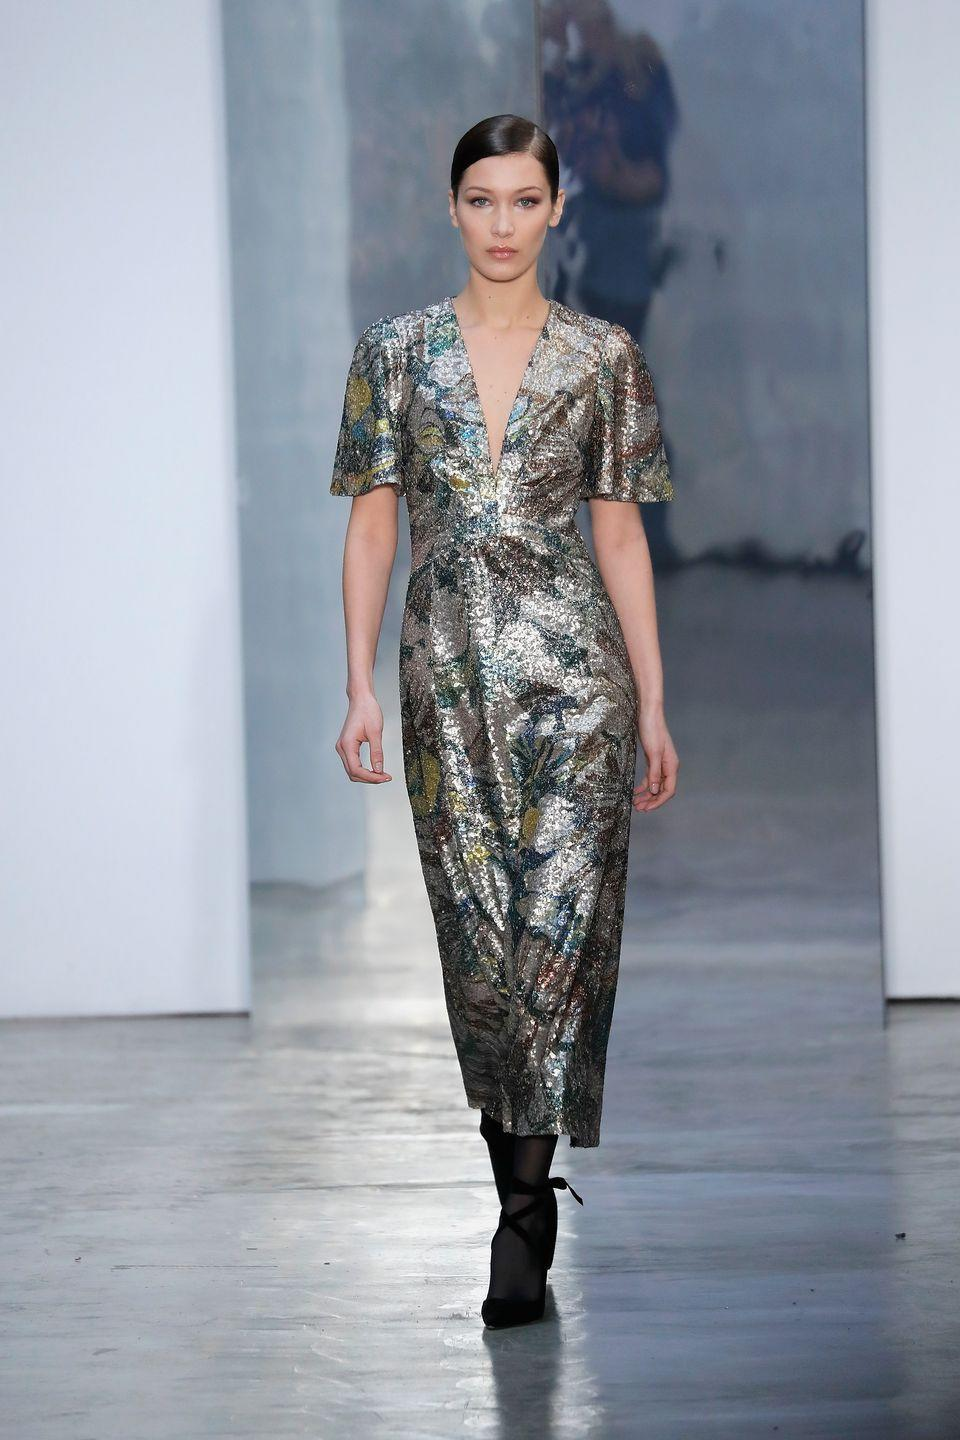 <p>Bella Hadid stormed the runway for Carolina Herrera's AW17 collection at NYFW</p>